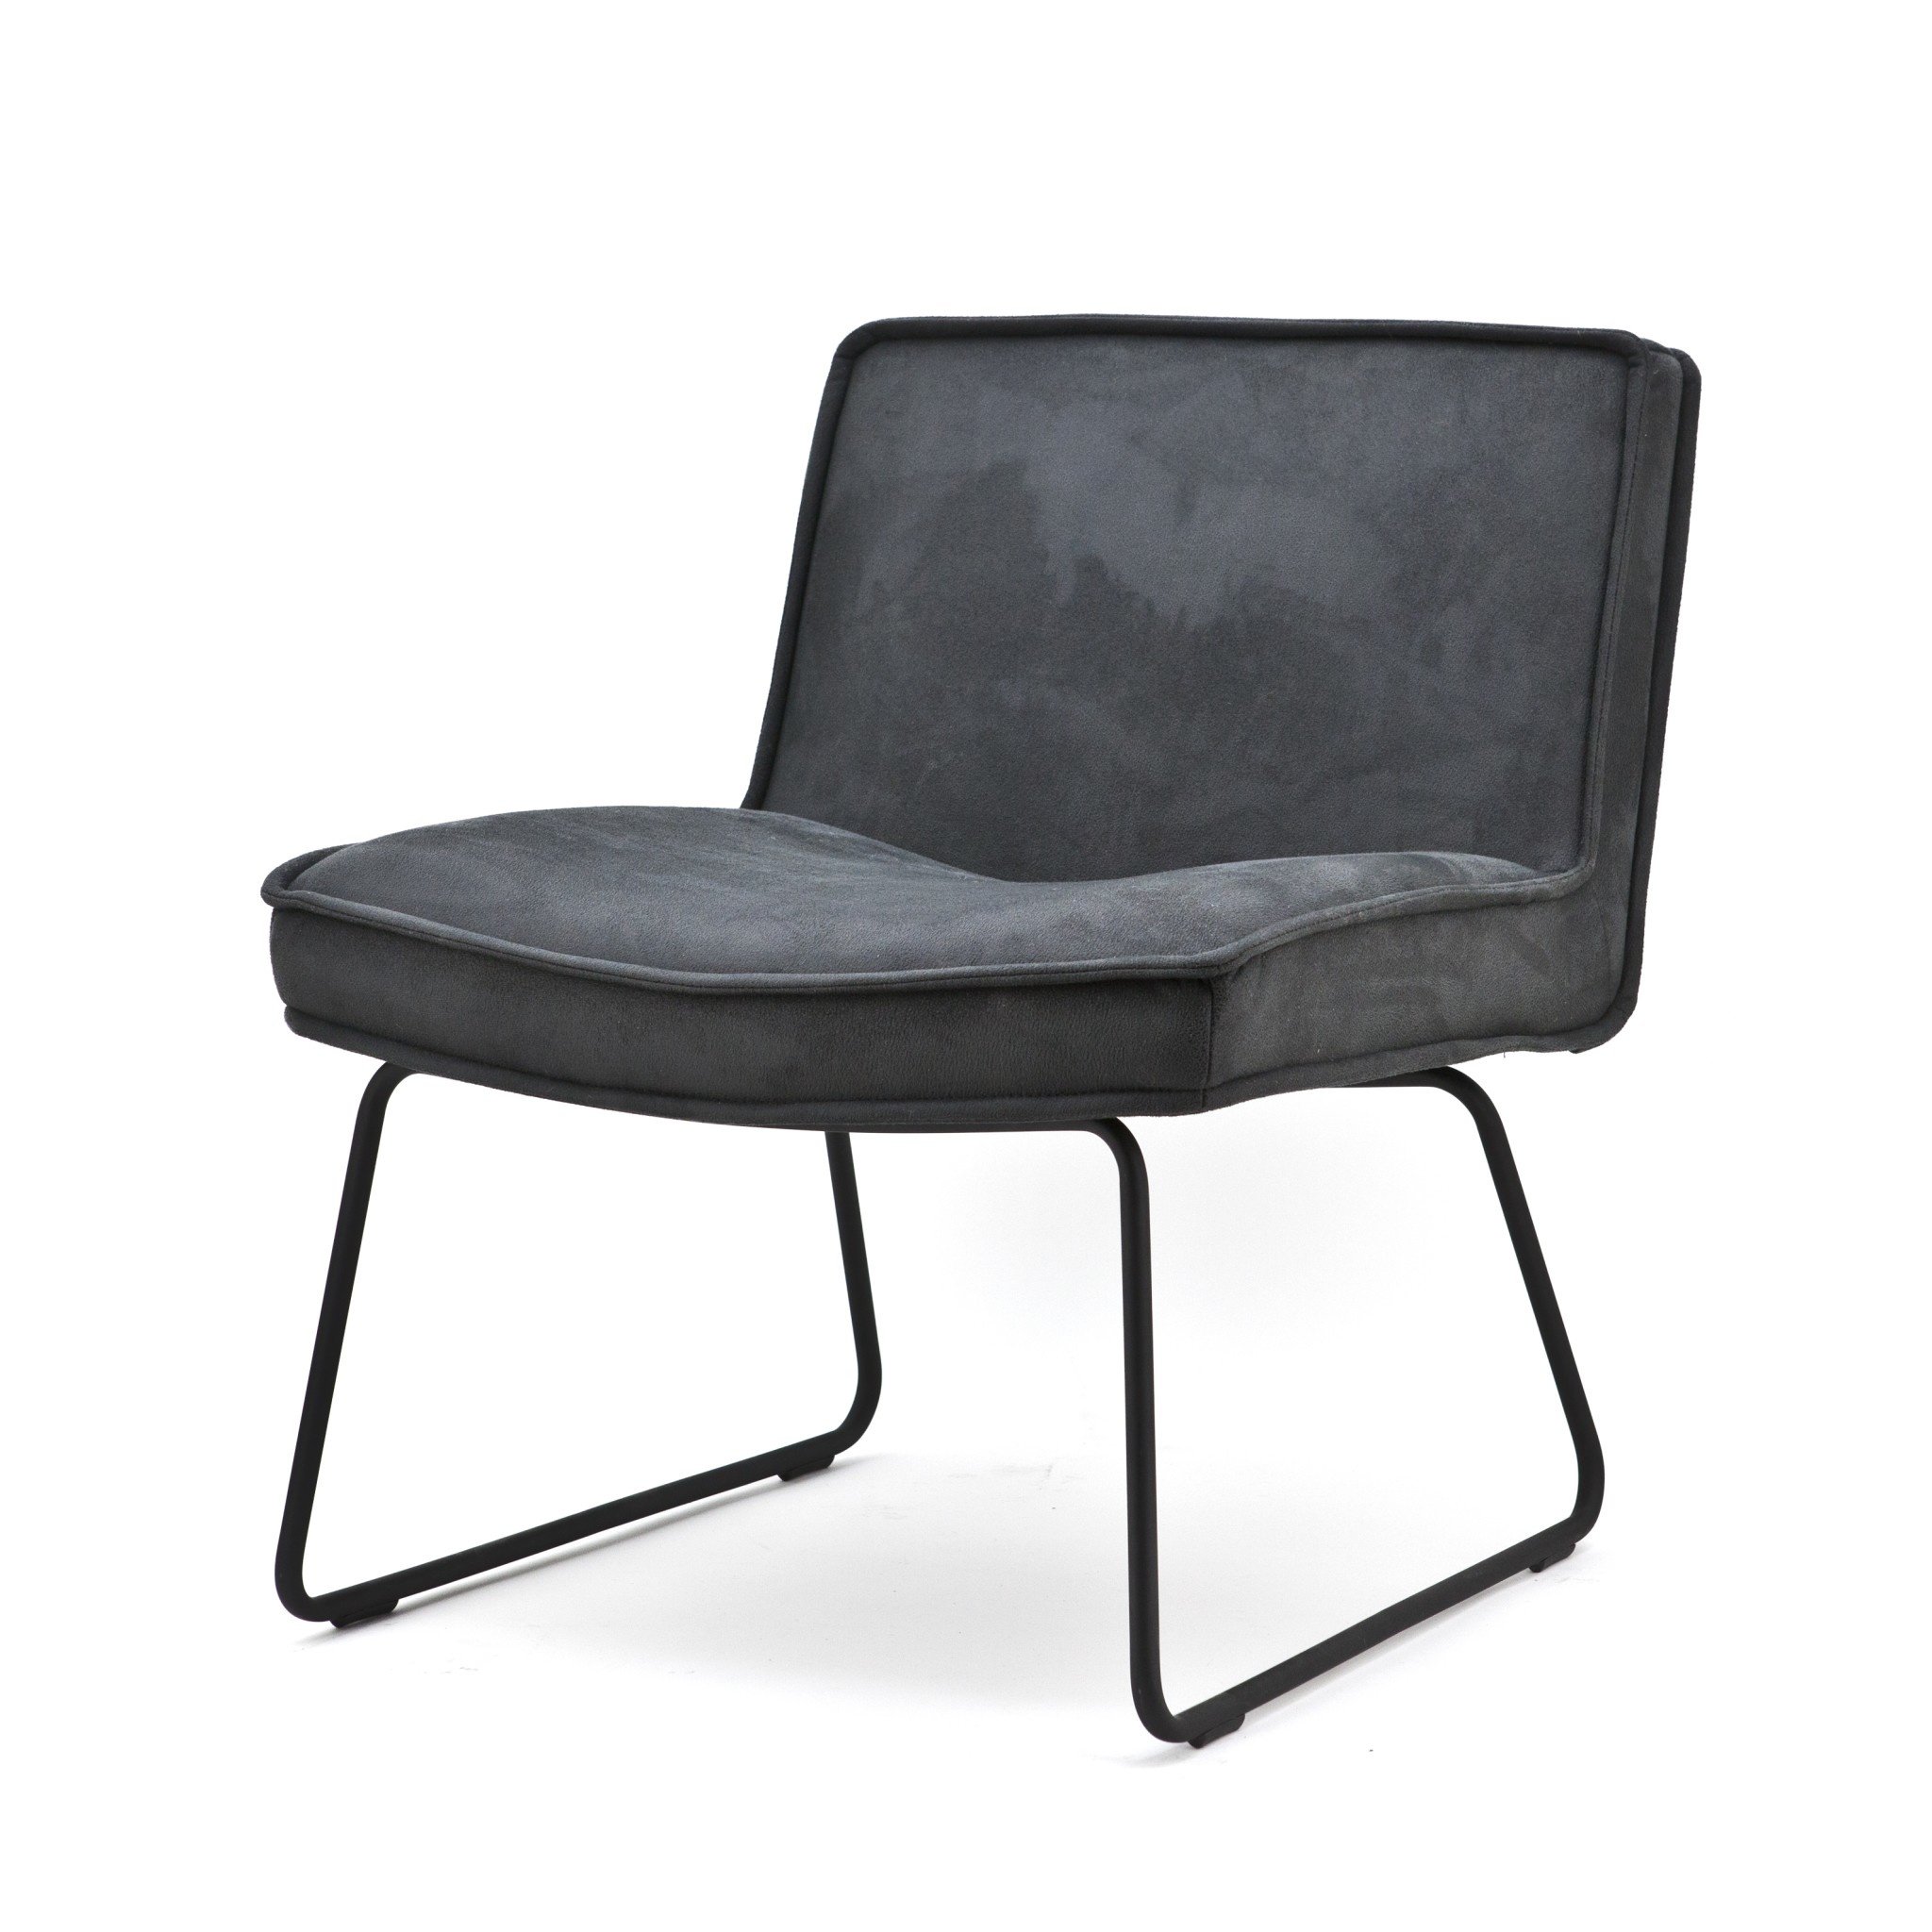 By-Boo By-Boo Fauteuil Montana Touareg